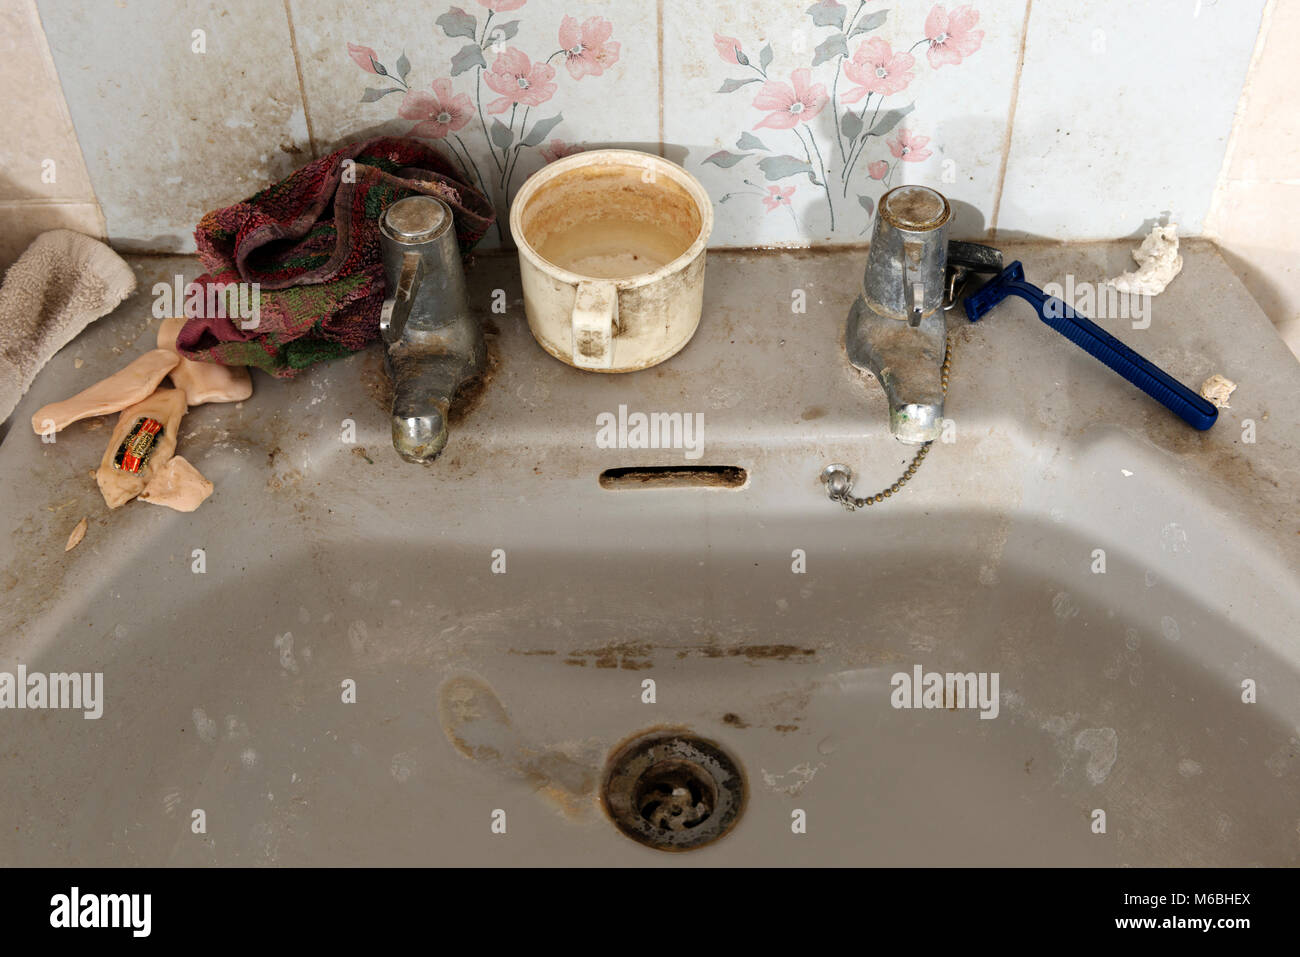 Dirty bathroom sink - Stock Image